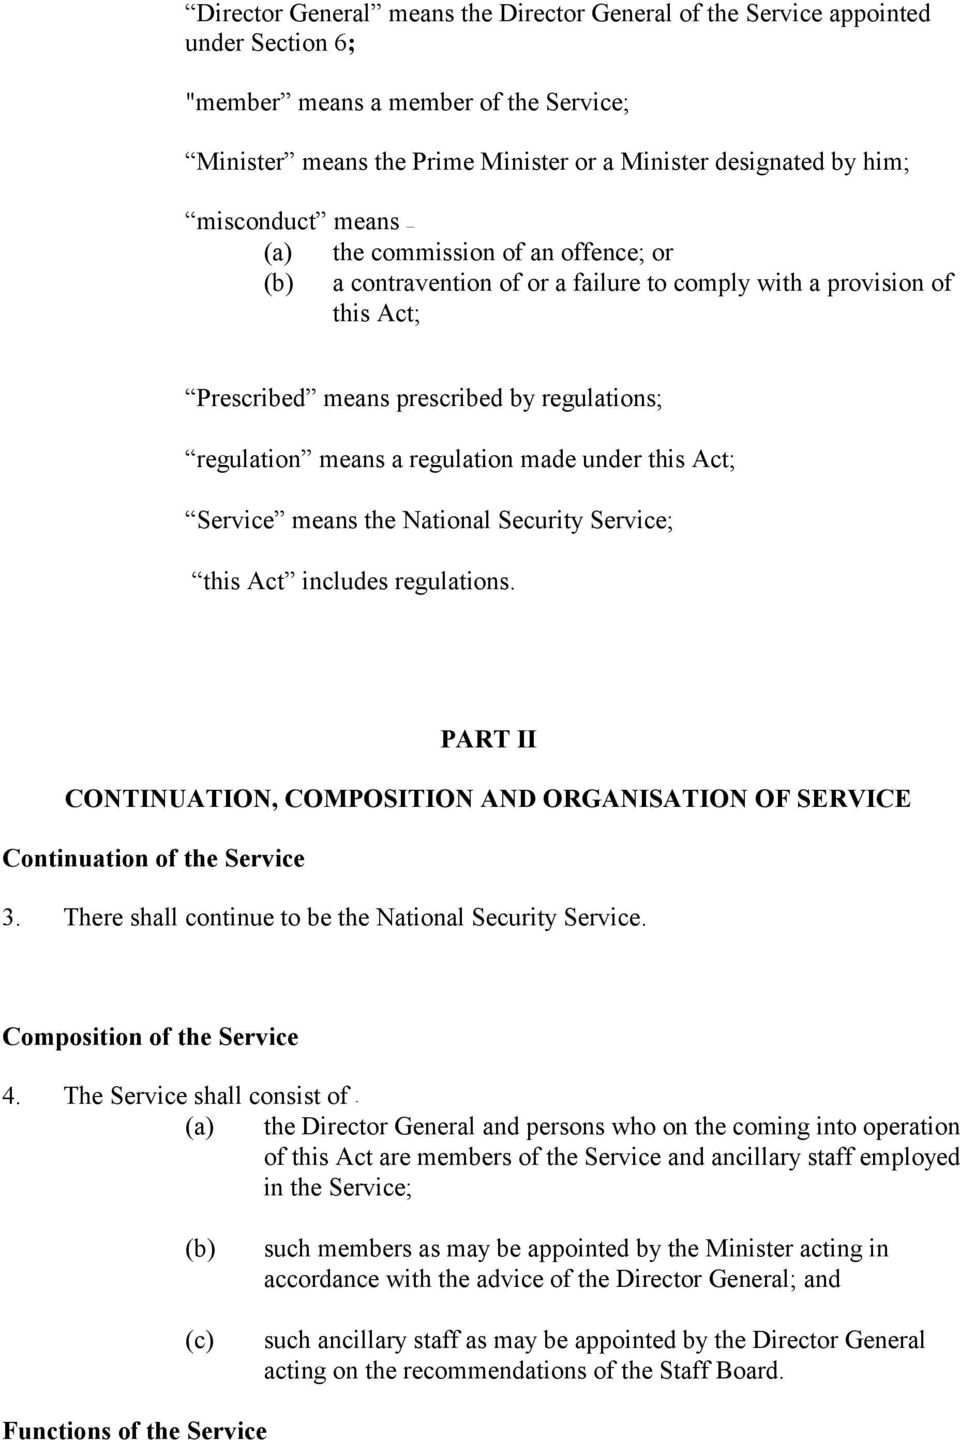 made under this Act; Service means the National Security Service; this Act includes regulations. PART II CONTINUATION, COMPOSITION AND ORGANISATION OF SERVICE Continuation of the Service 3.